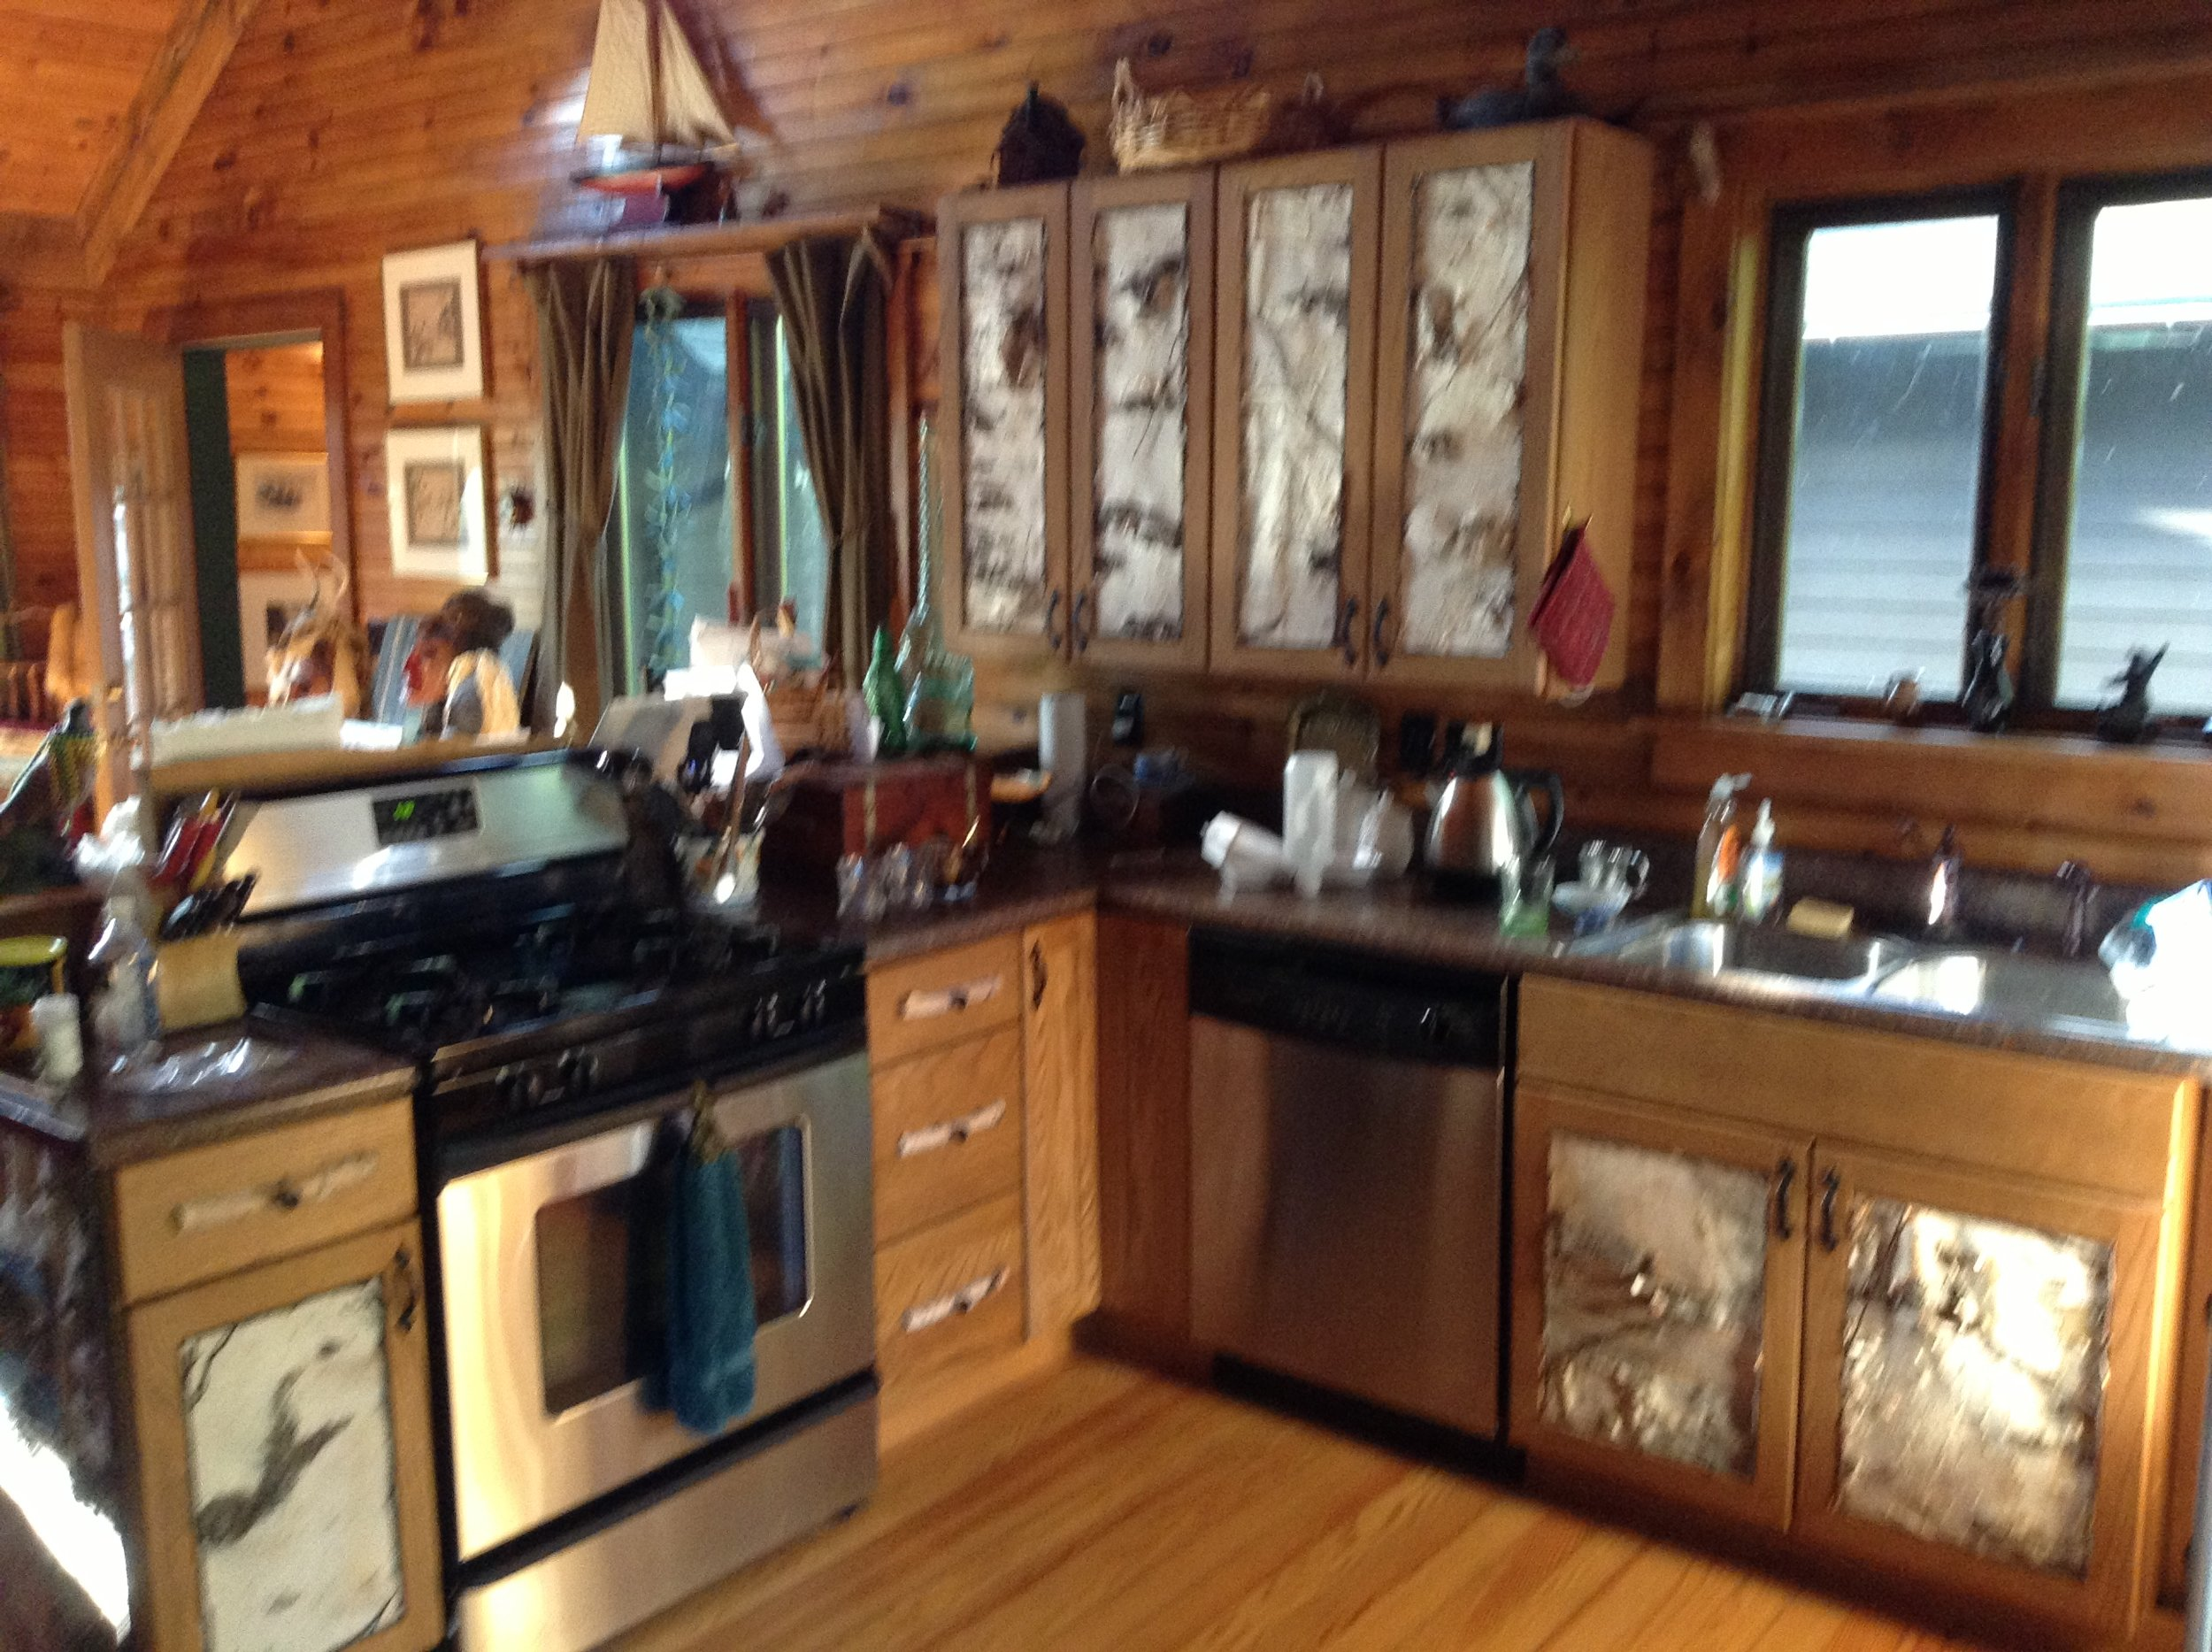 Kitchen cabinets with birch bark paneling and twig accents done by Anne